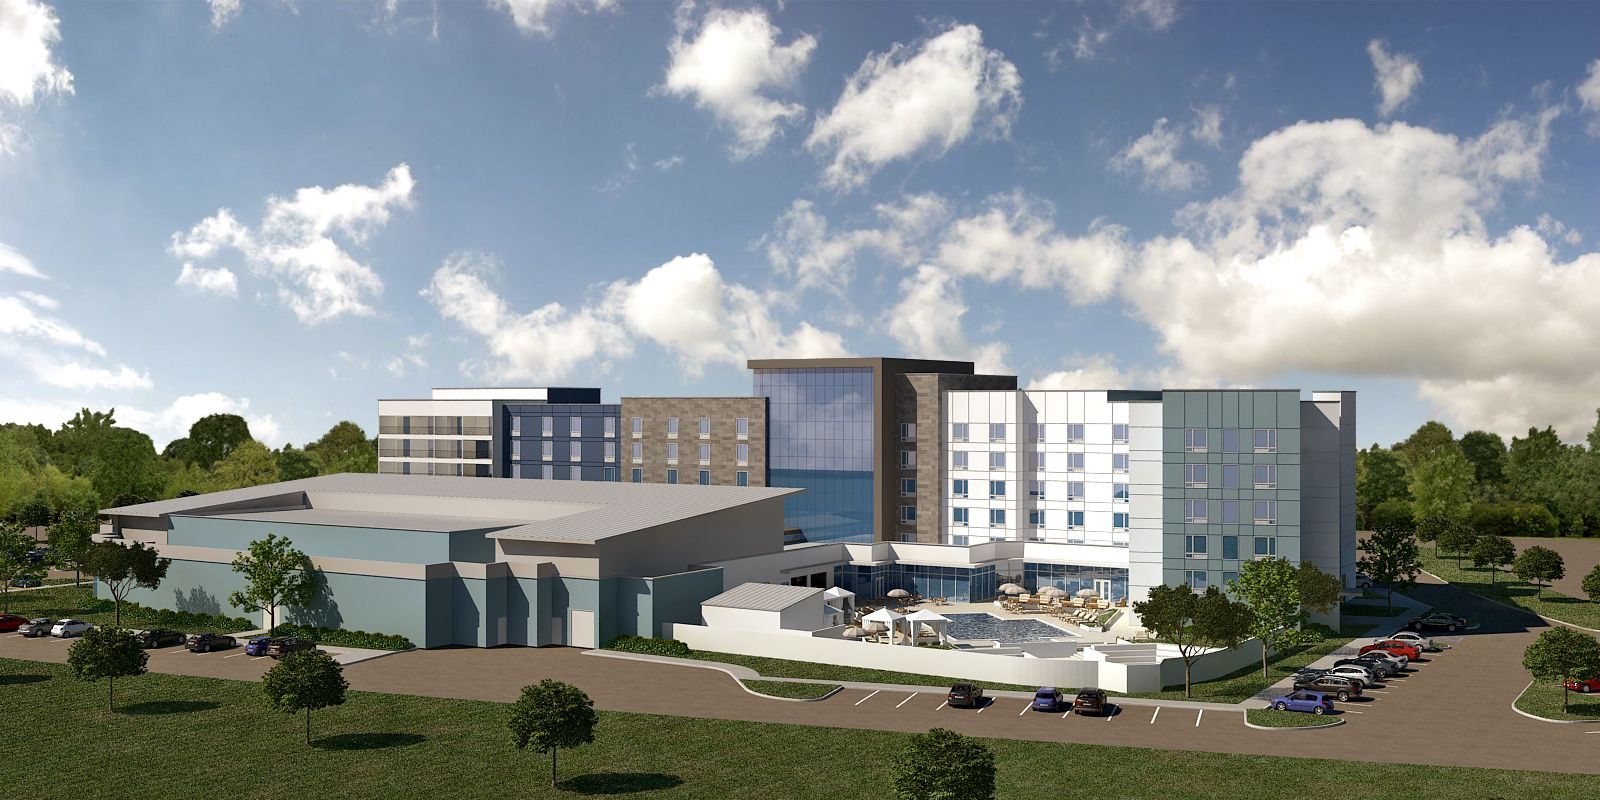 Q Hotels 7.4-acre Arlington hotel project will open in 2018.